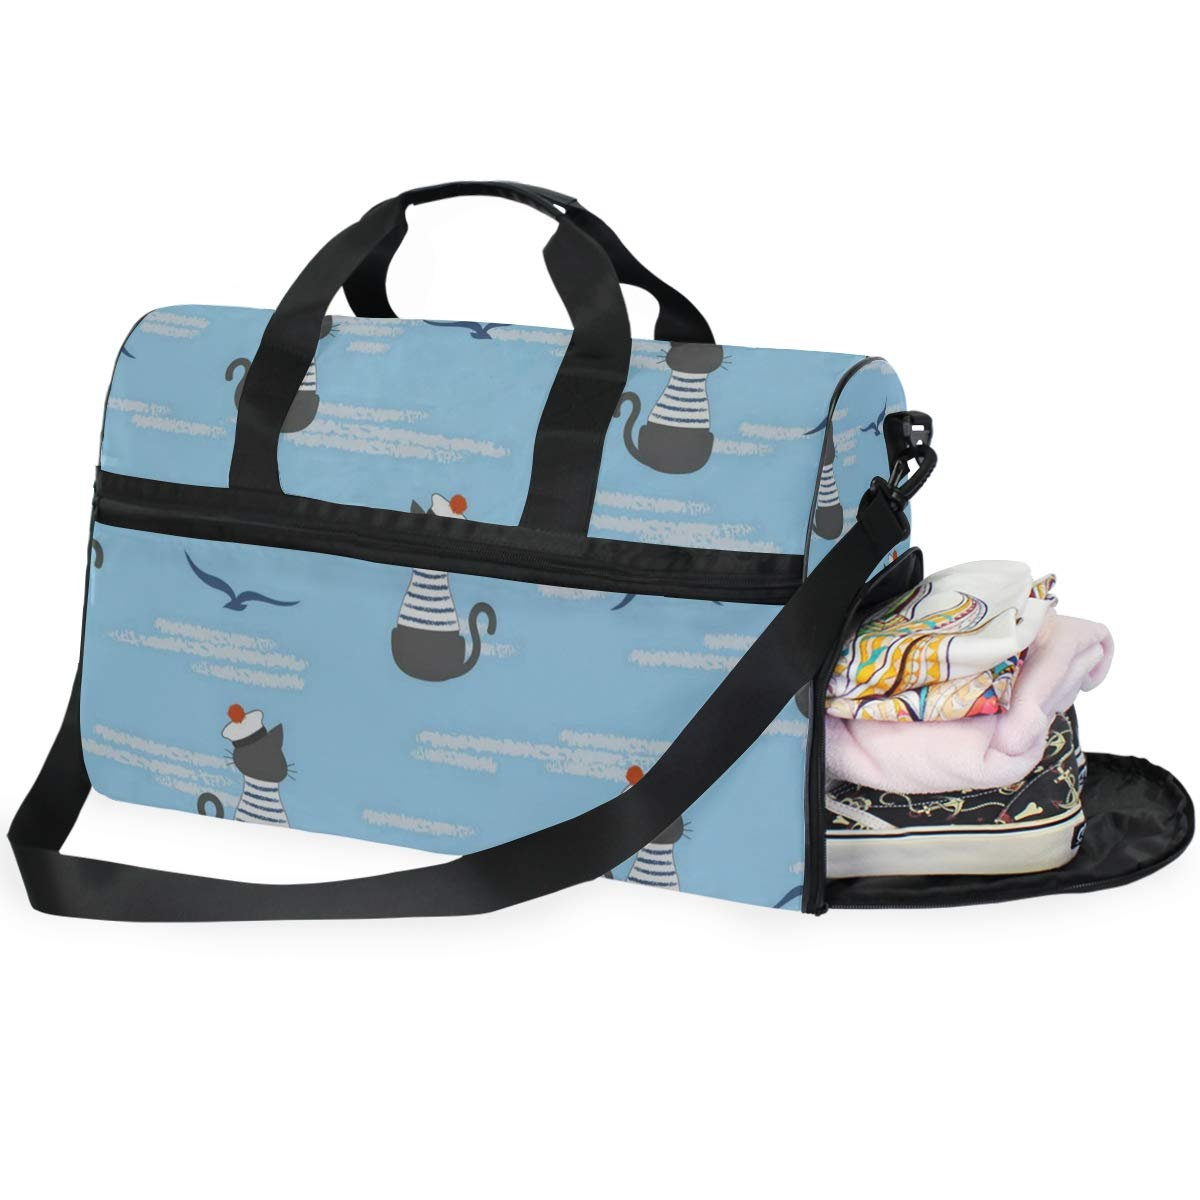 Travel Tote Luggage Weekender Duffle Bag Captain Cat Large Canvas shoulder bag with Shoe Compartment